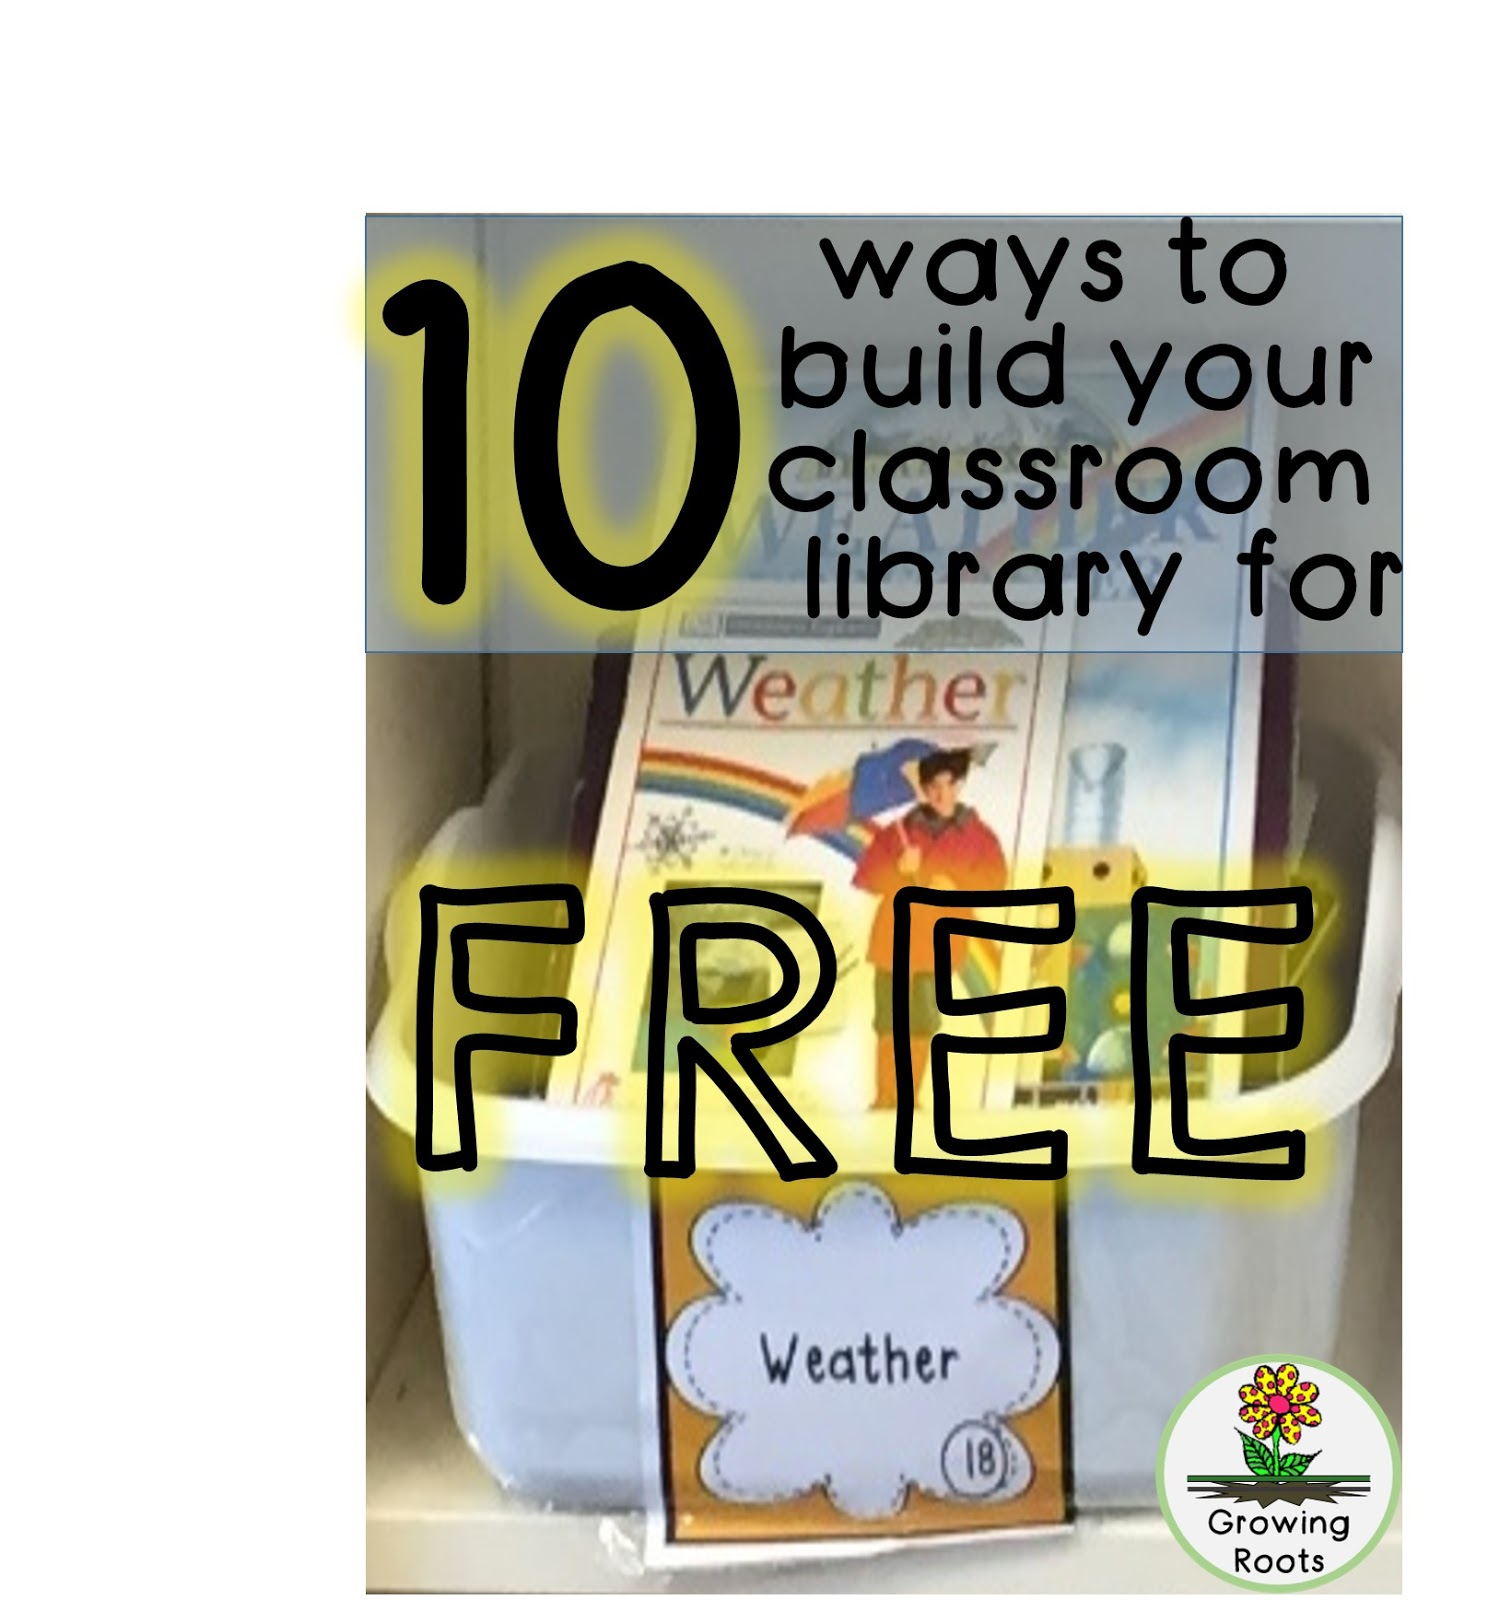 Growing Roots: Building A Classroom Library